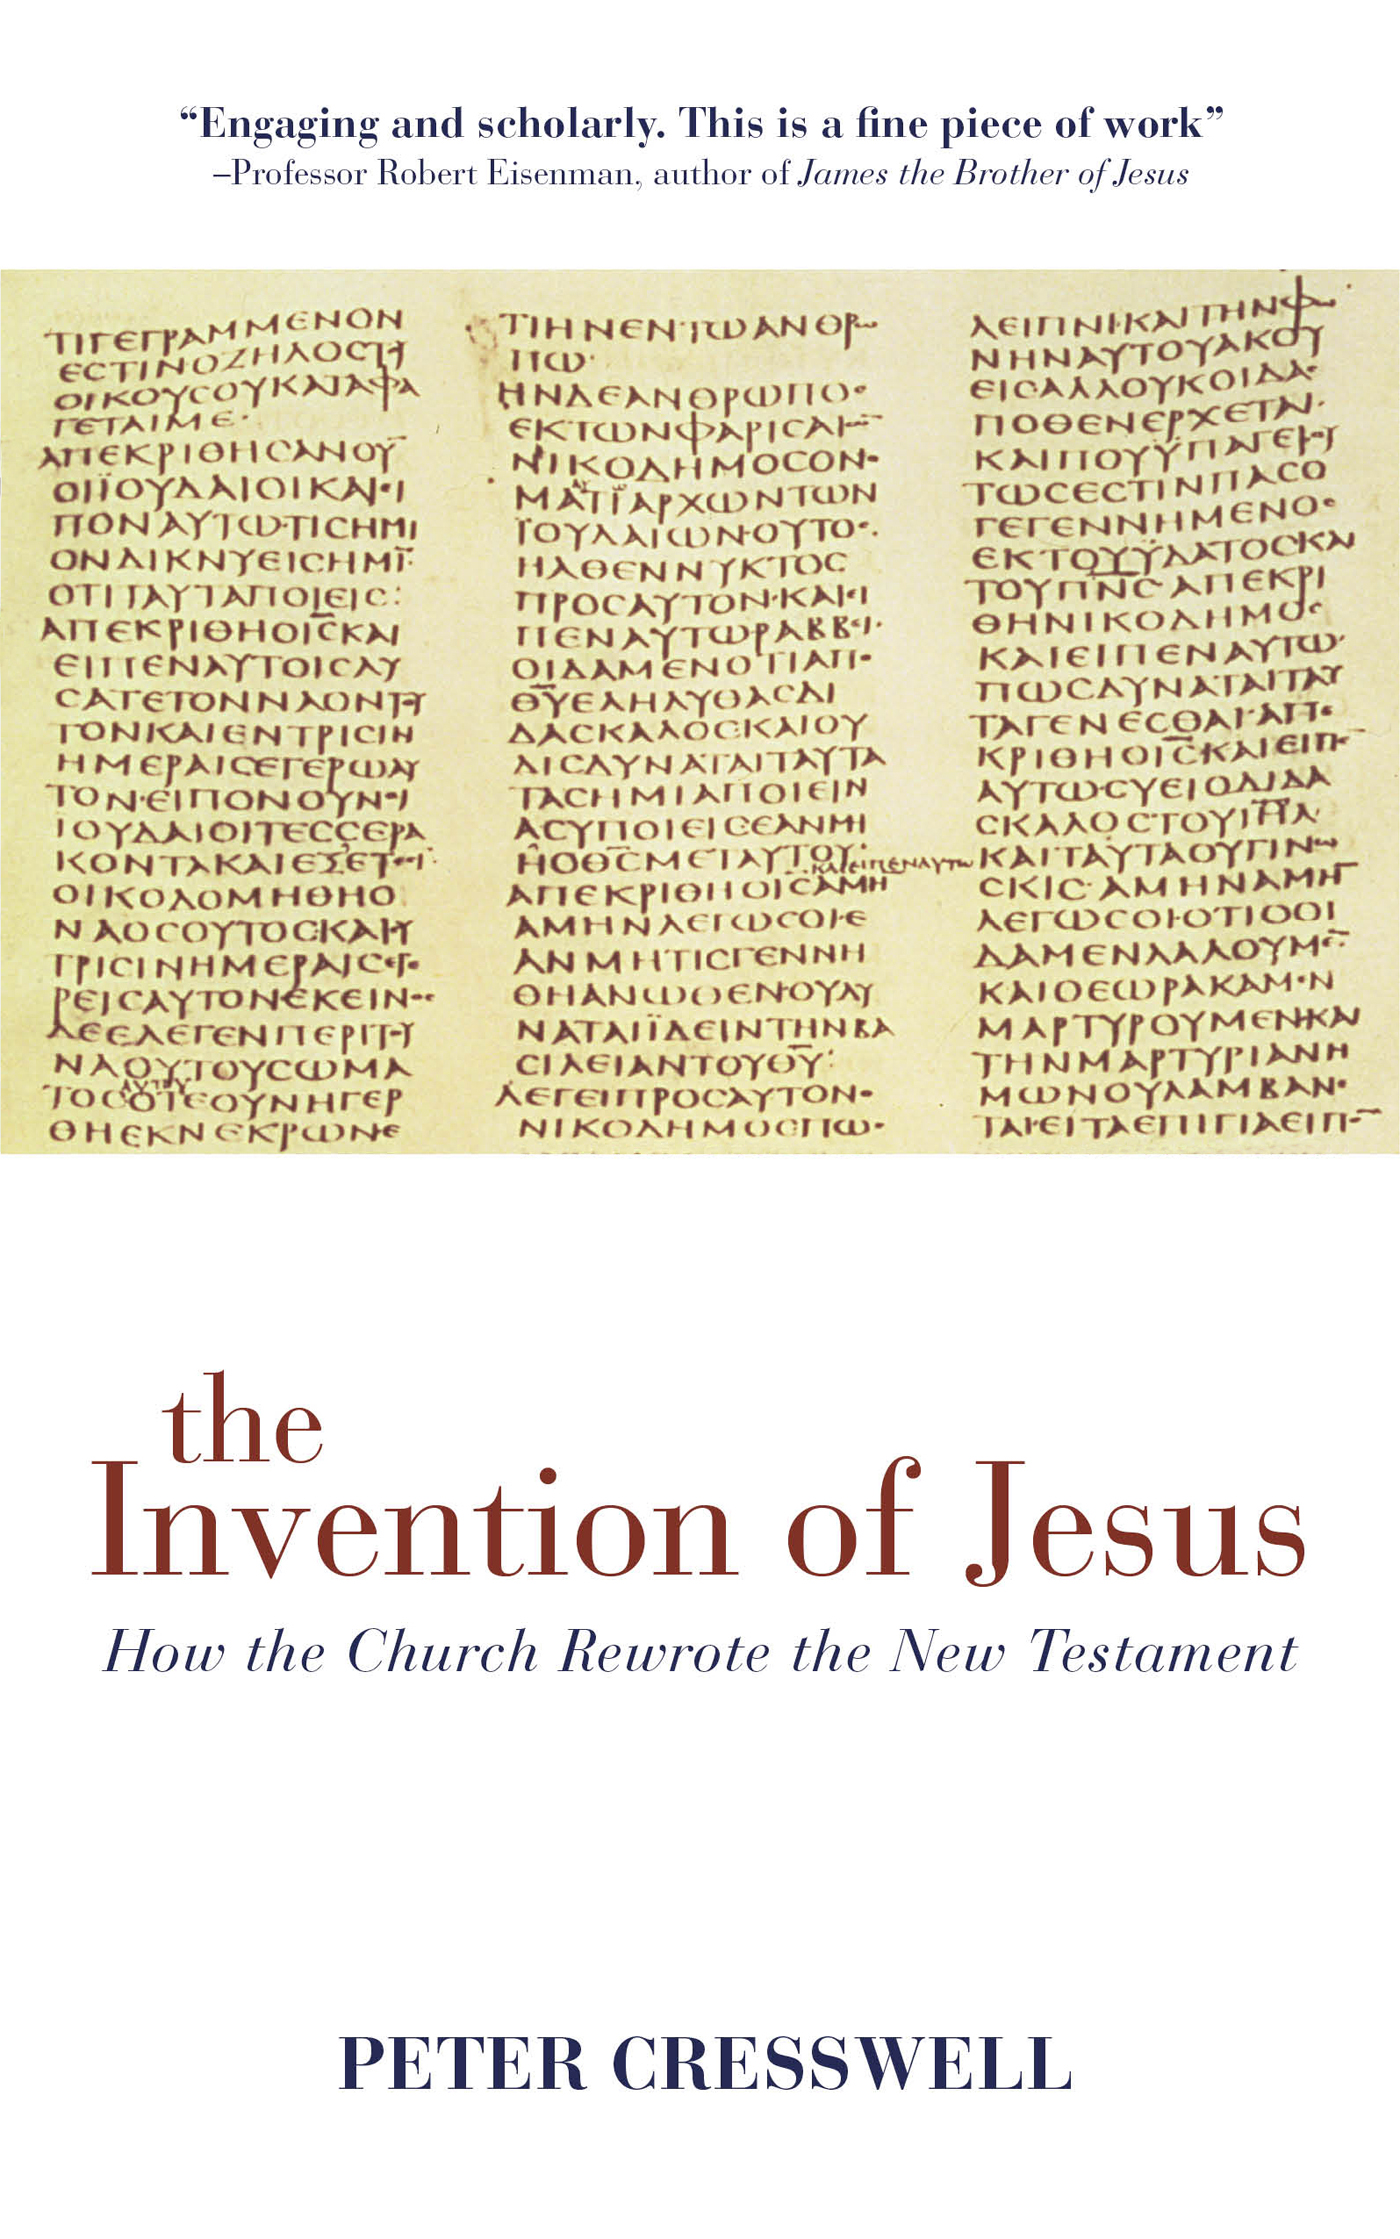 The Invention of Jesus: How the Church Rewrote the New Testament